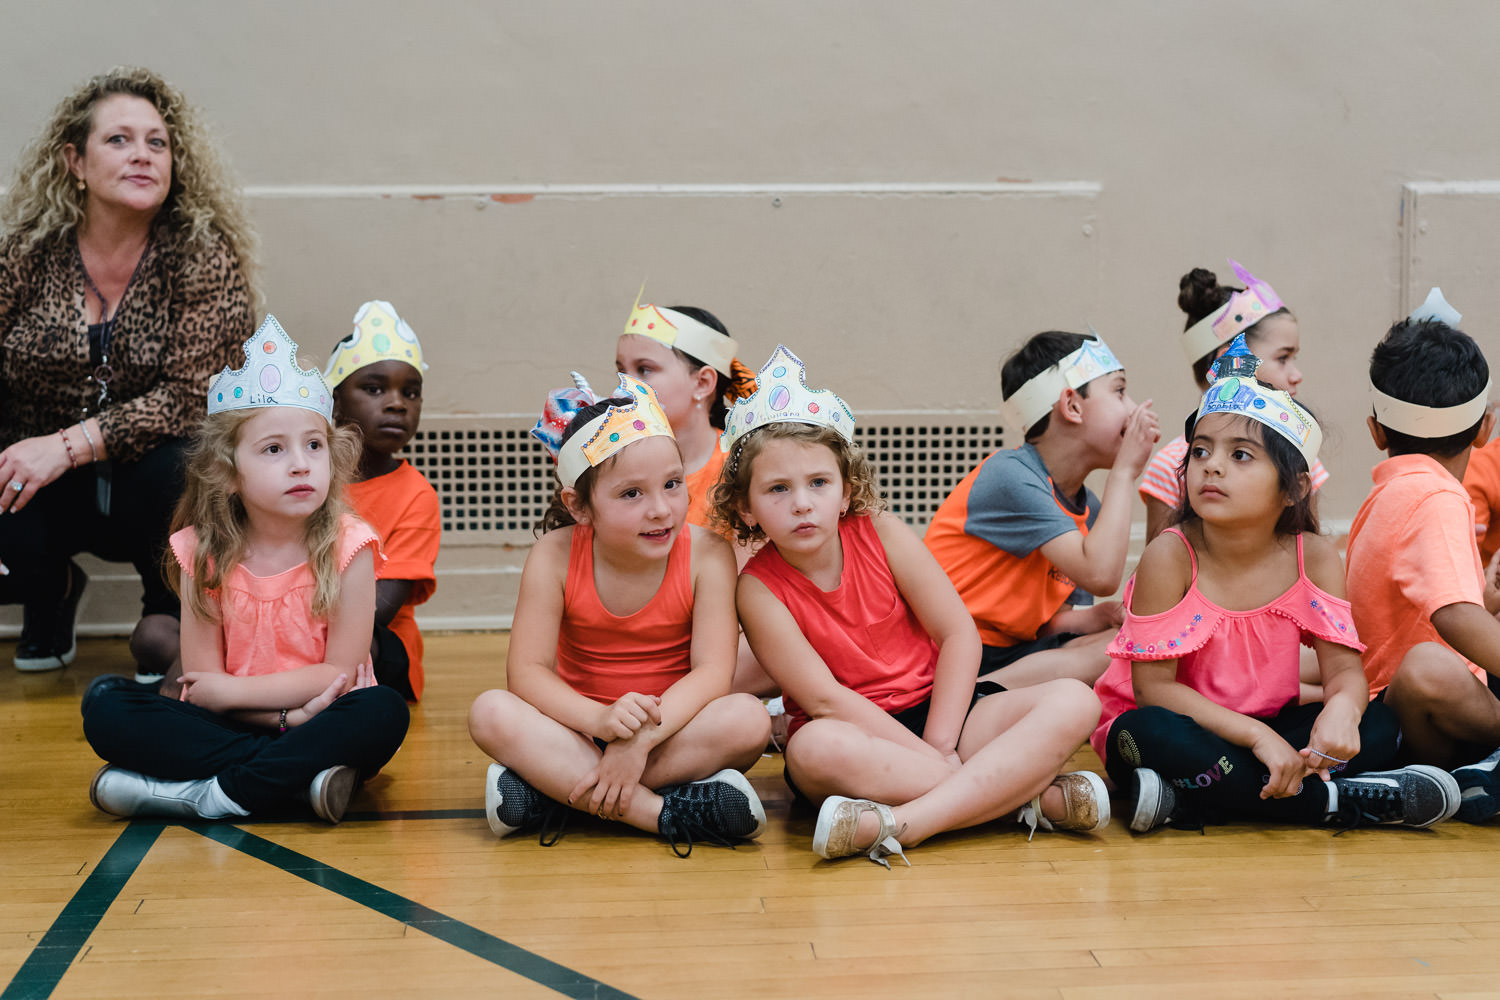 Children wait to perform their kindergarten show.